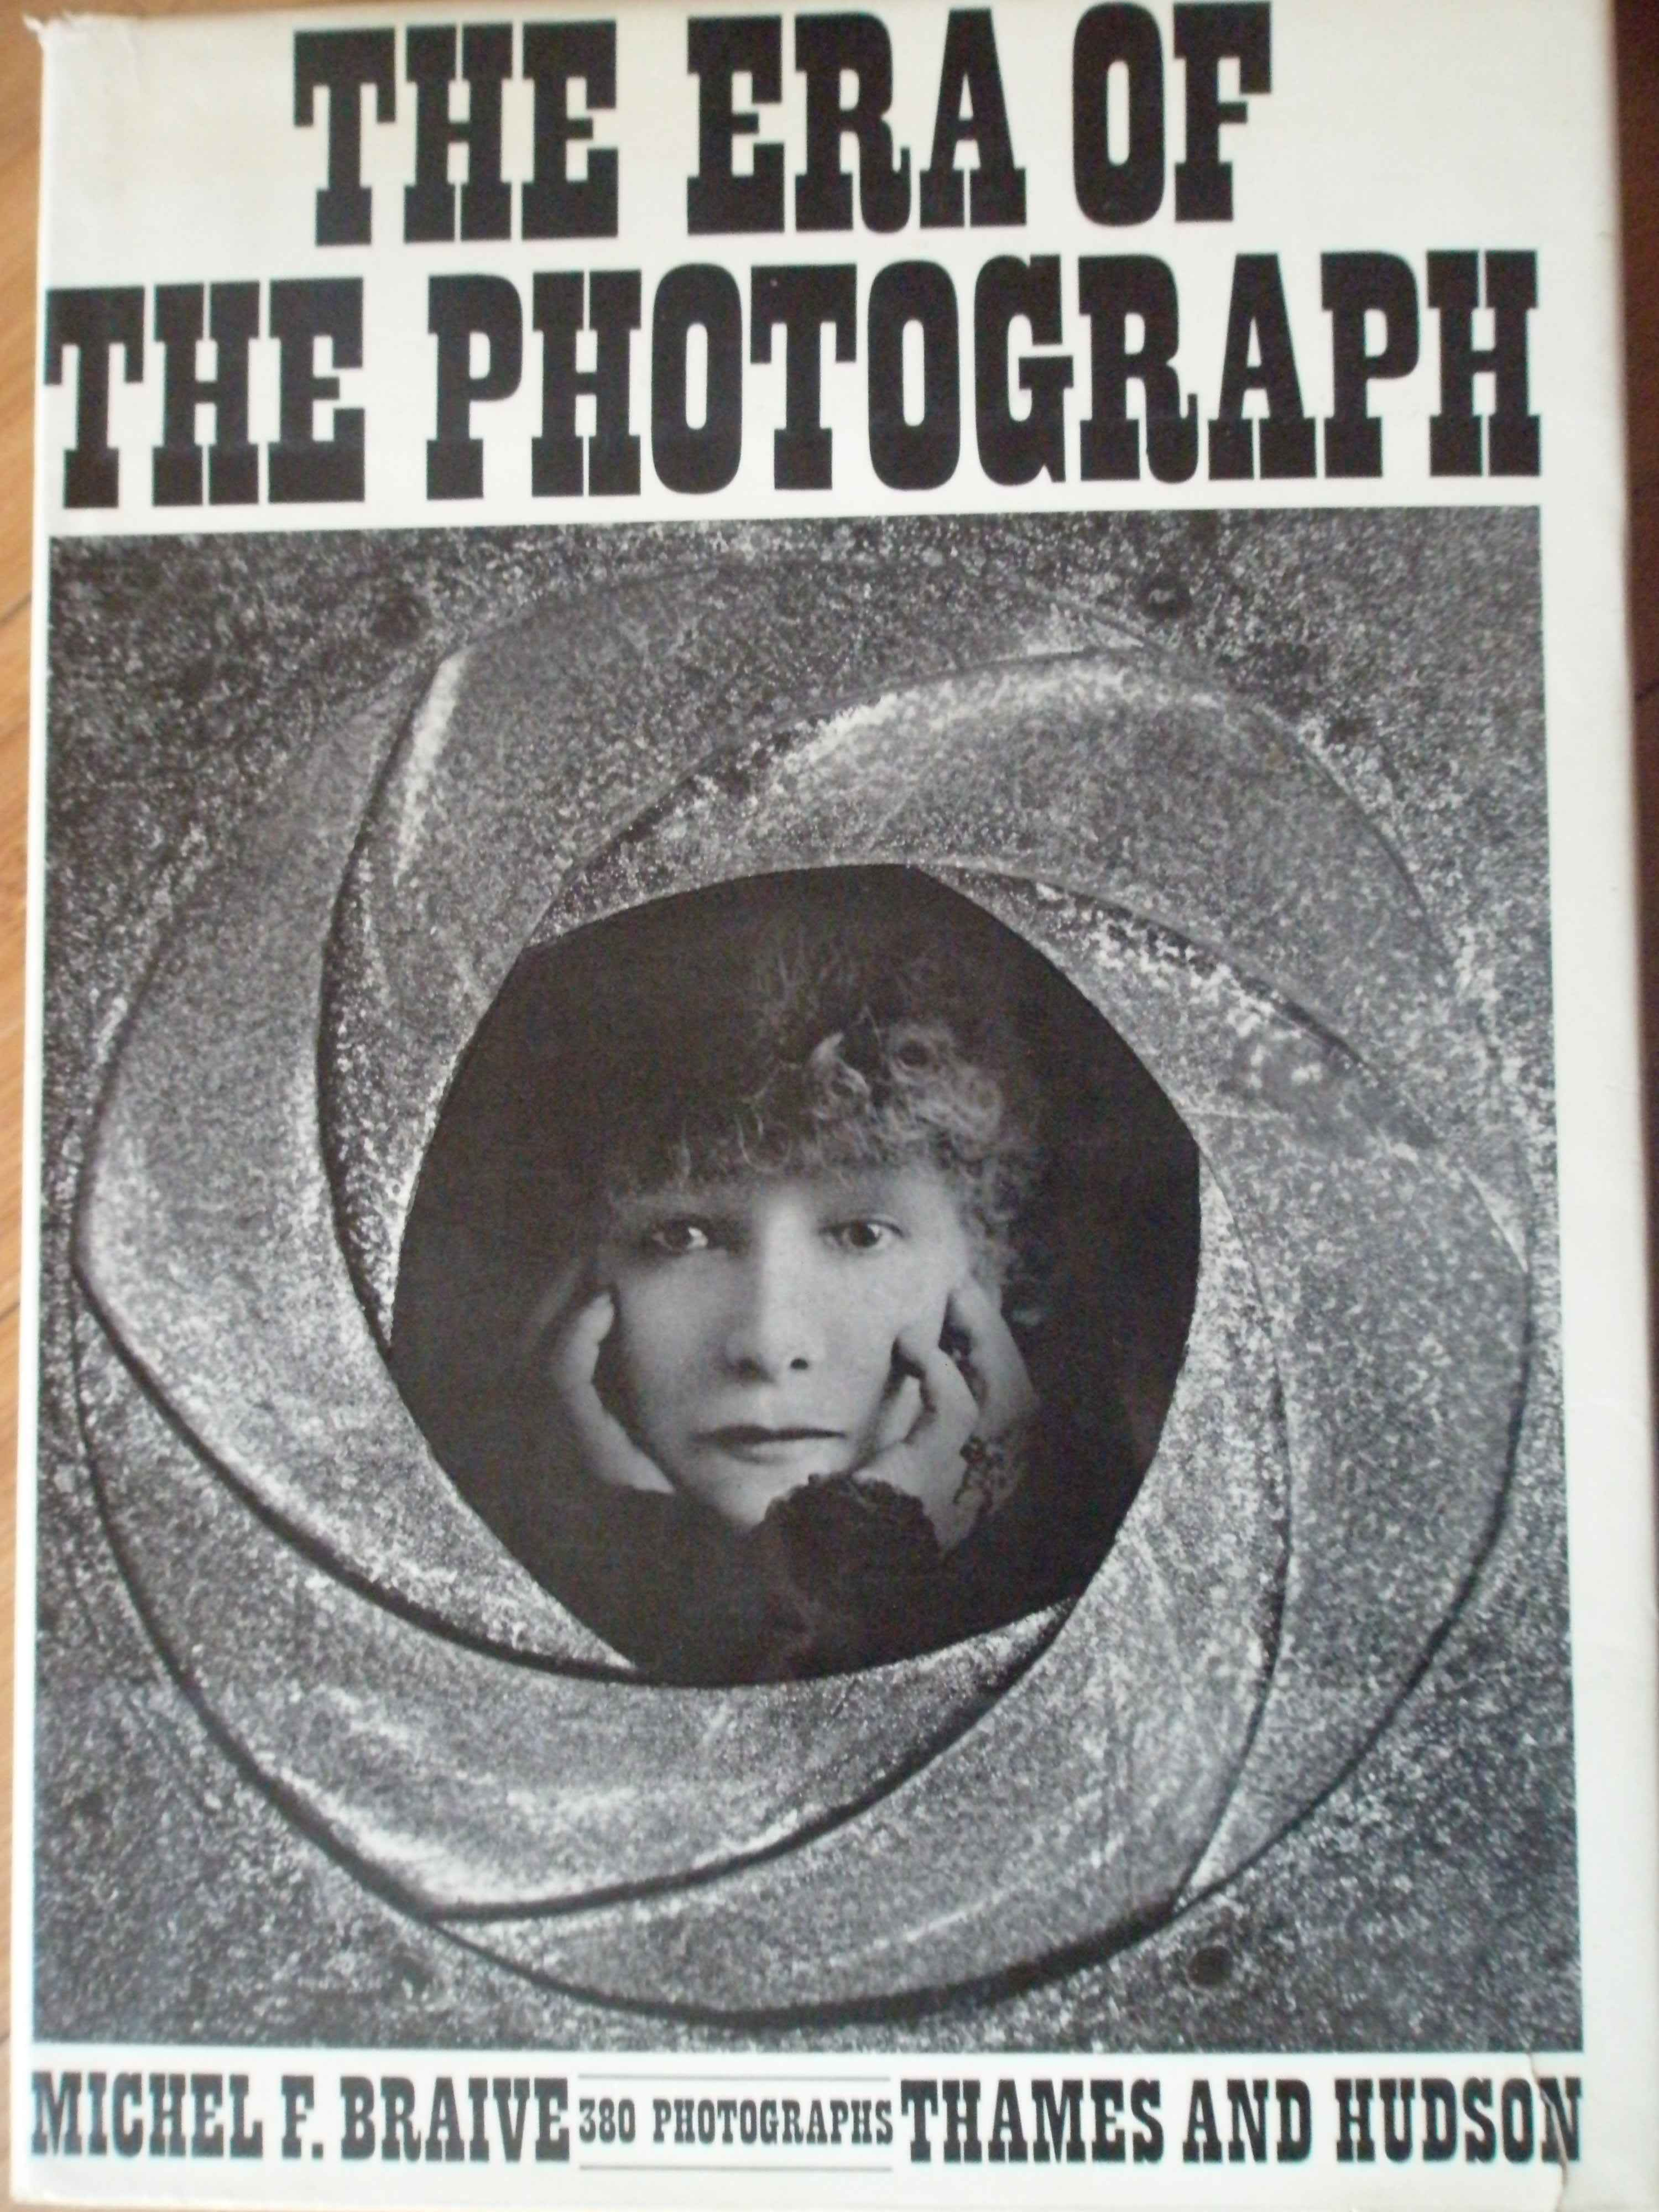 the era of the photograph                                                                            michel f. braive